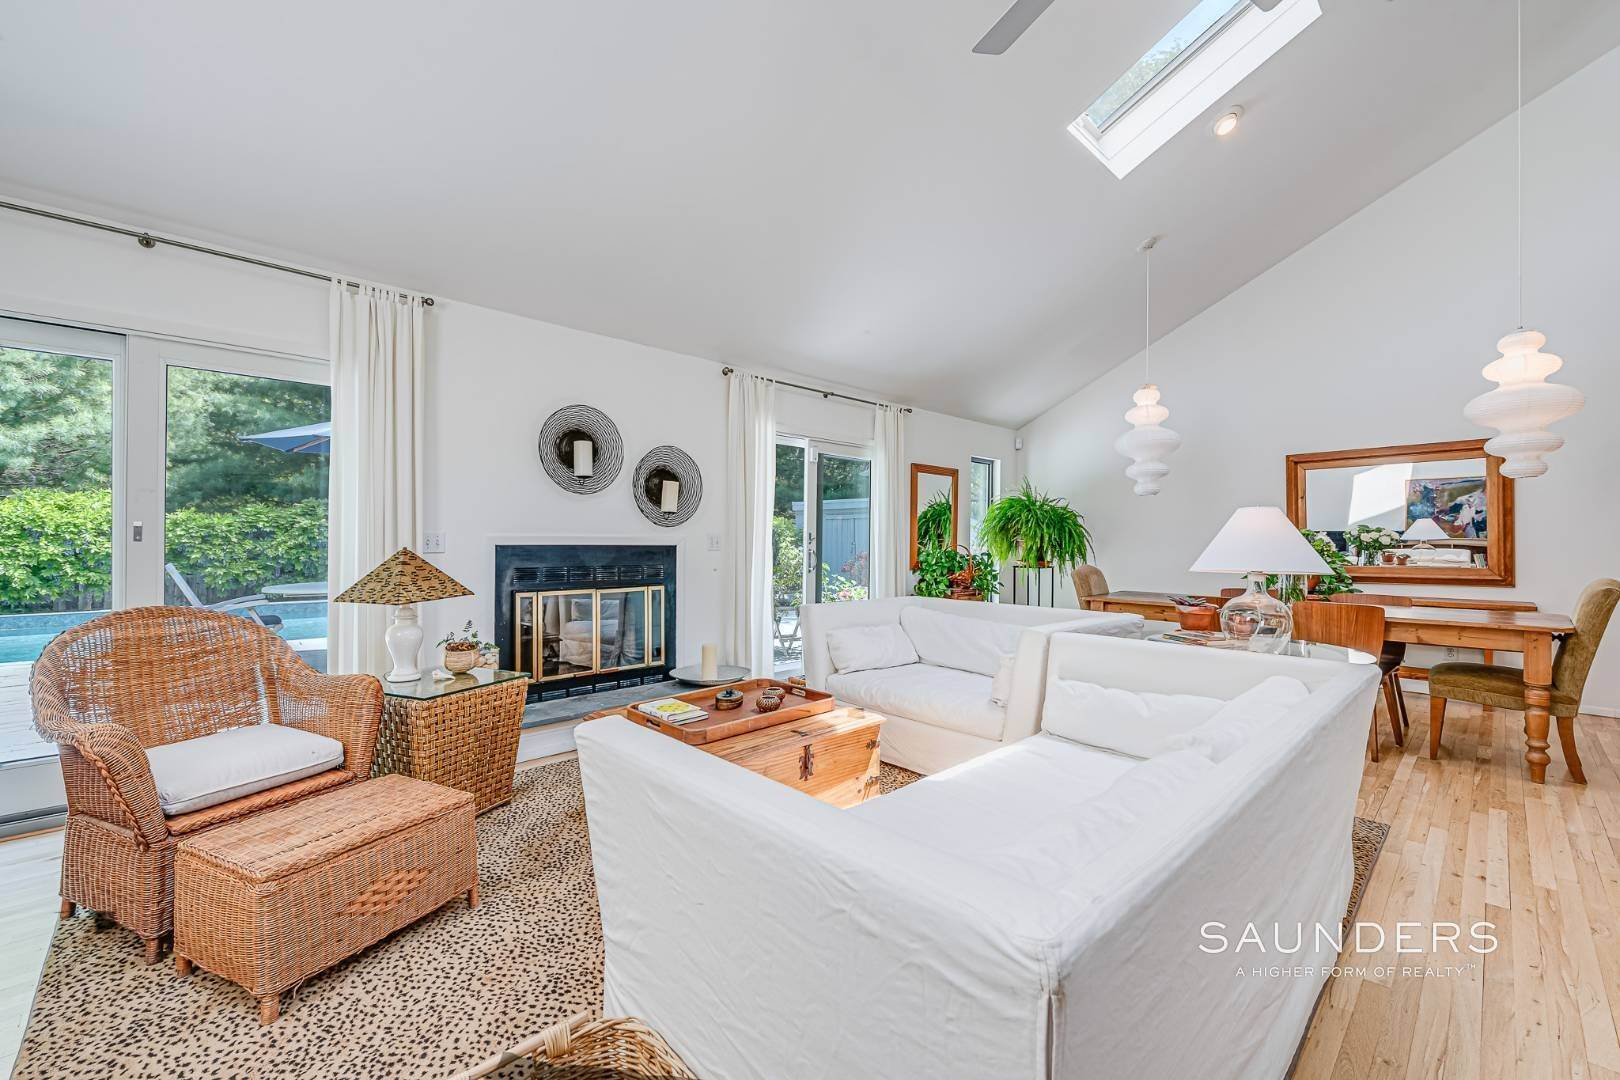 6. Single Family Homes for Sale at Beach House By The Bay 31 Long Woods Lane, East Hampton, East Hampton Town, NY 11937